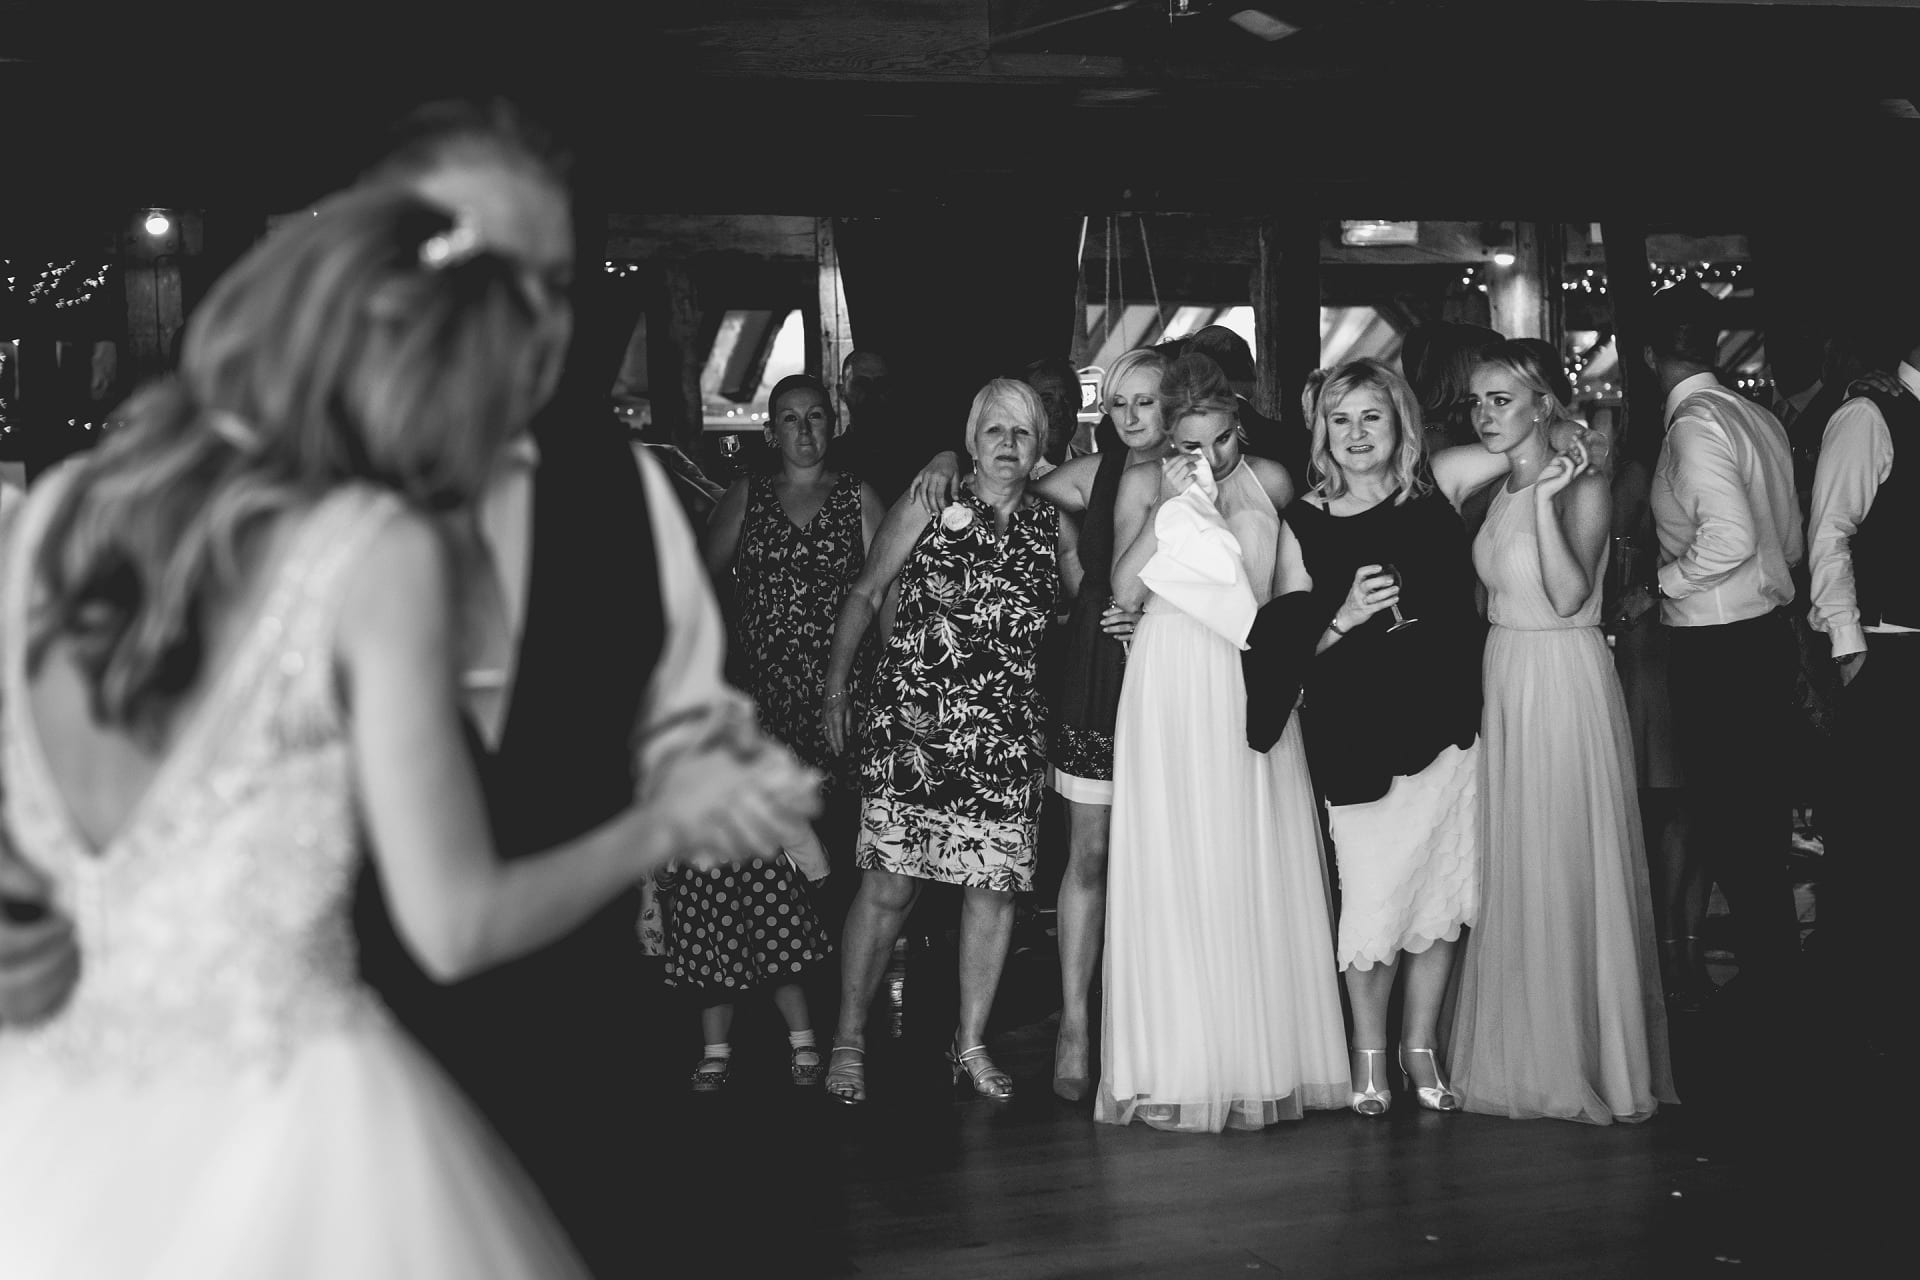 Mum and sister watching dad and daughter first dance